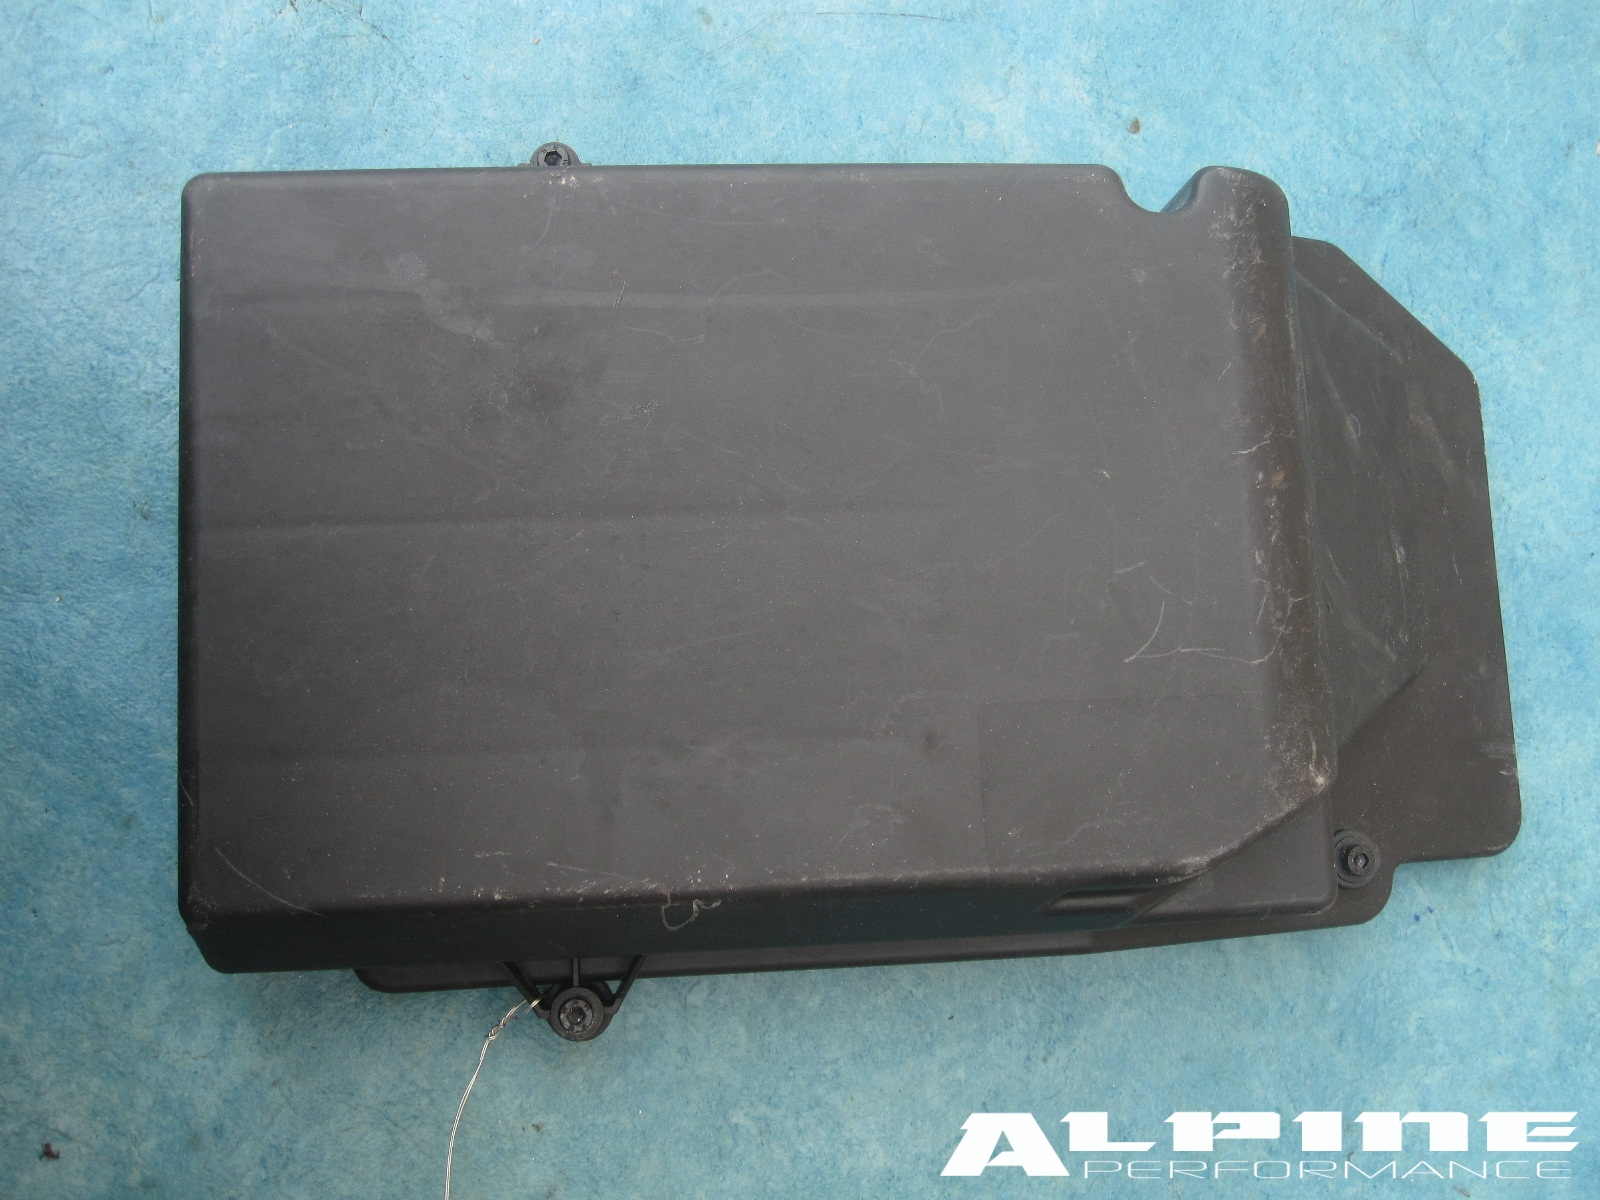 Origianal Mercedes Benz S550 Cl550 Left Case Housing Fuse Box Cover 2007 Location 1 In Stock